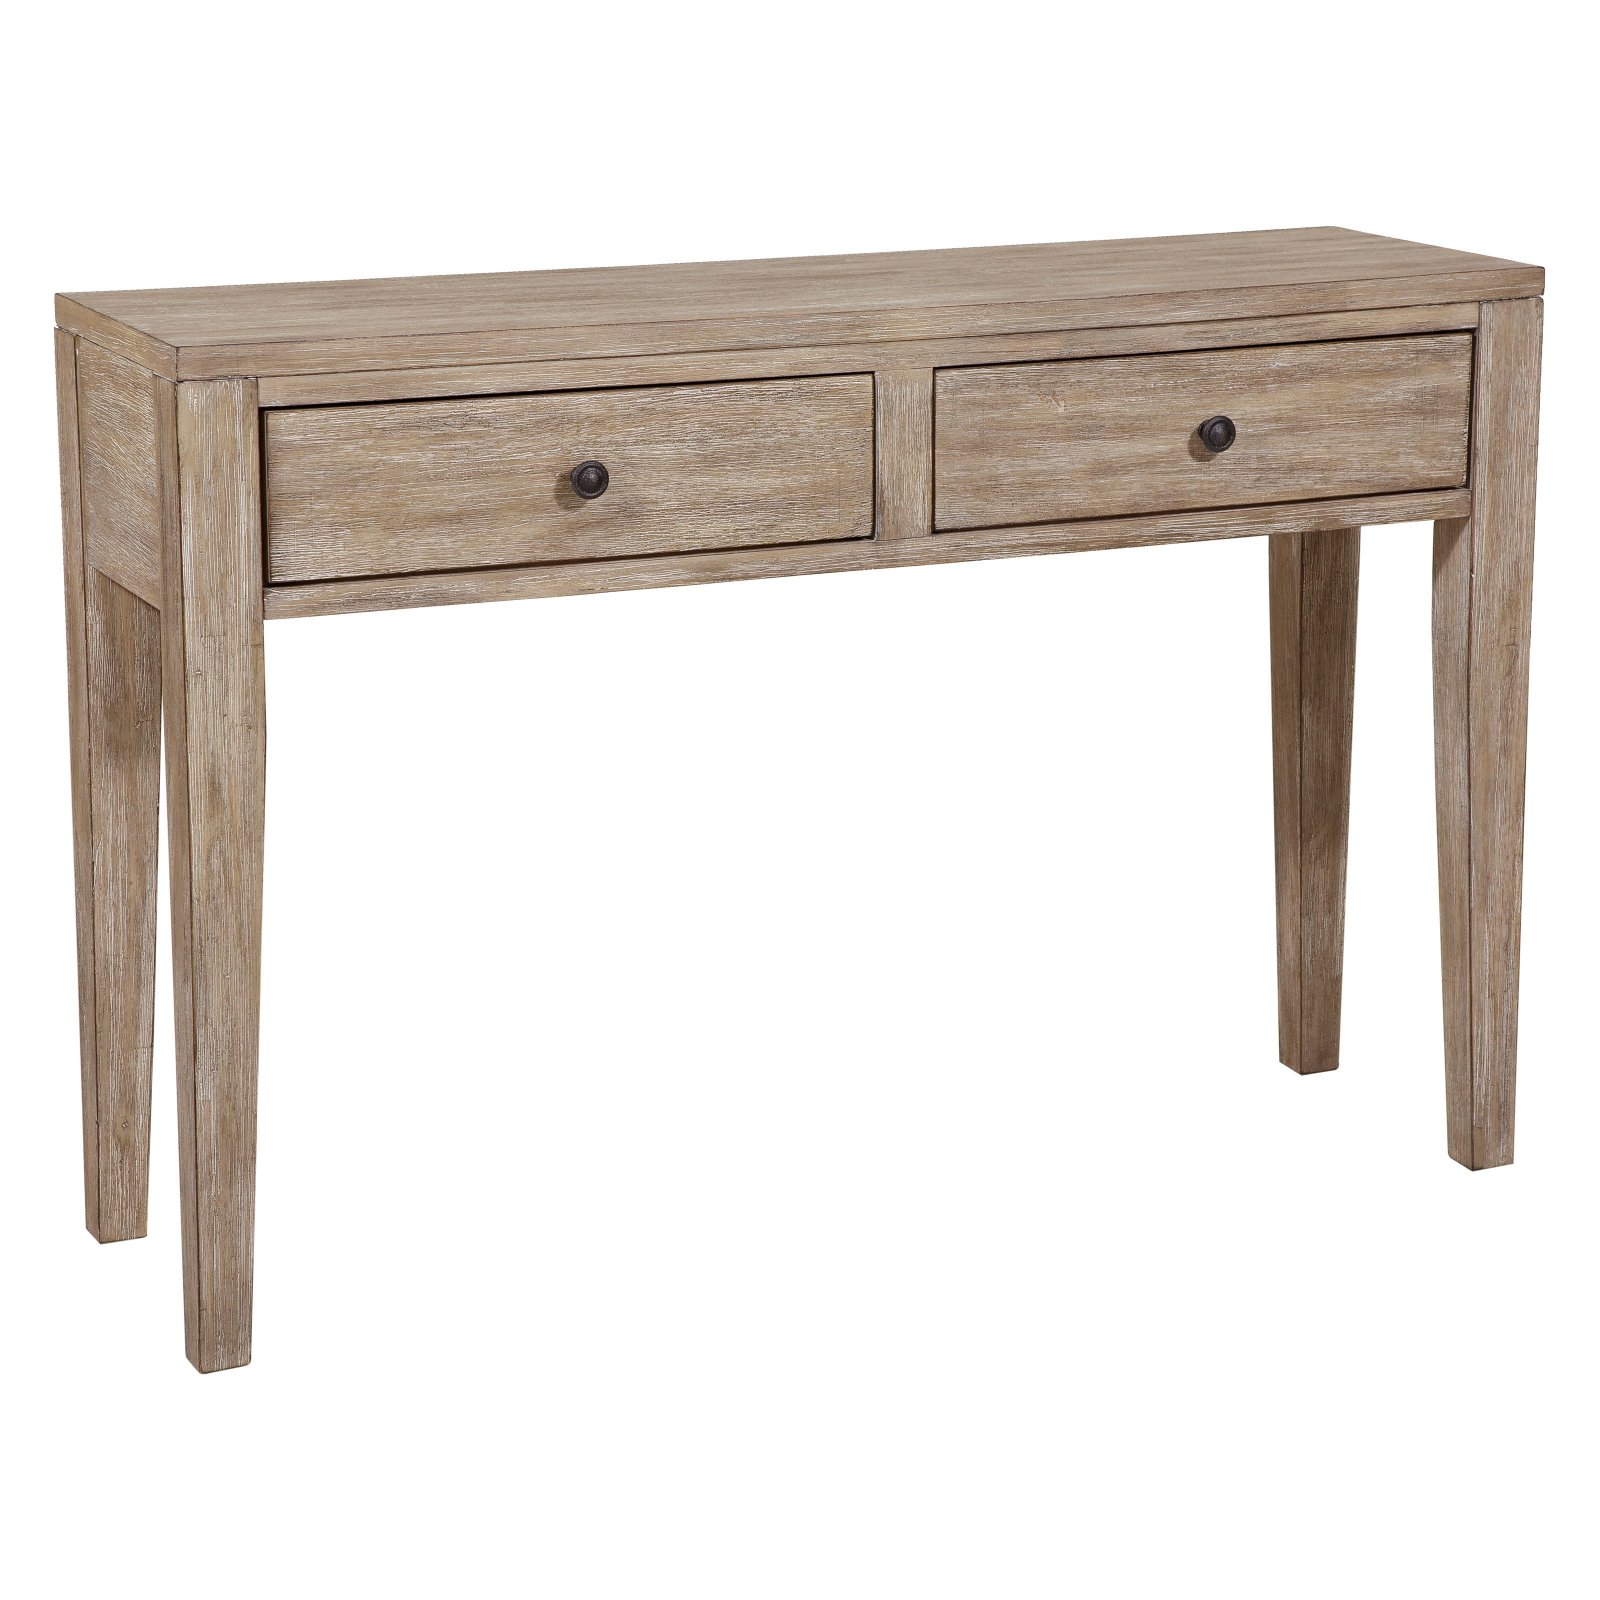 Farmhouse Style Distressed Wood Two Drawer Accent Storage Console Table